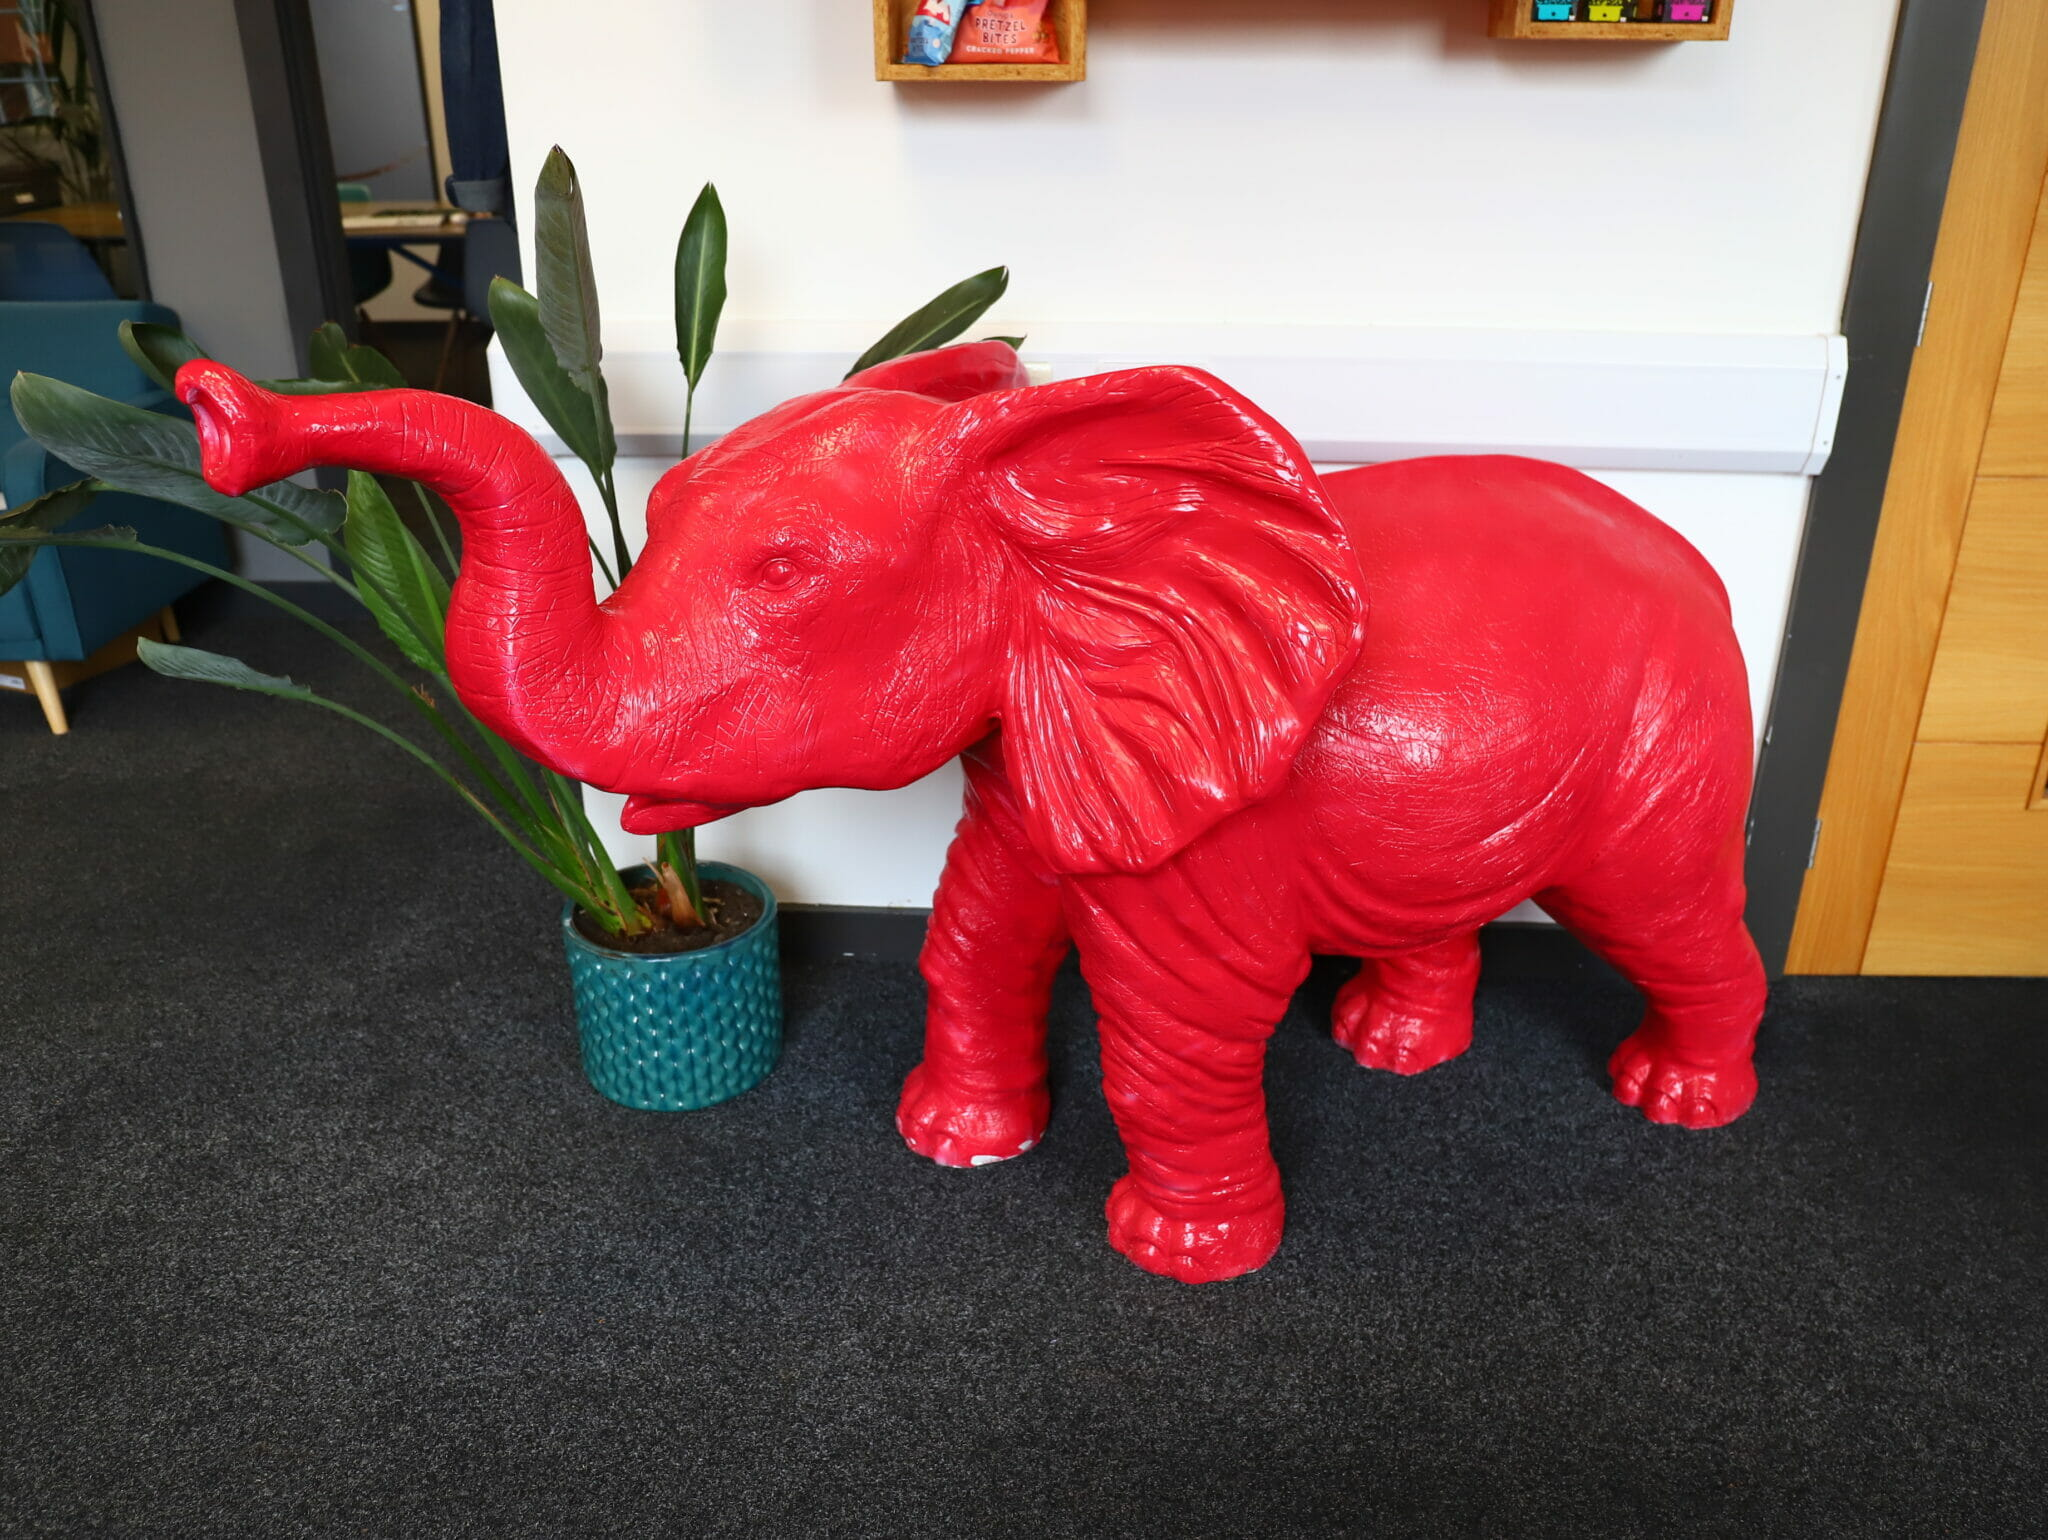 What's with the big red elephant?